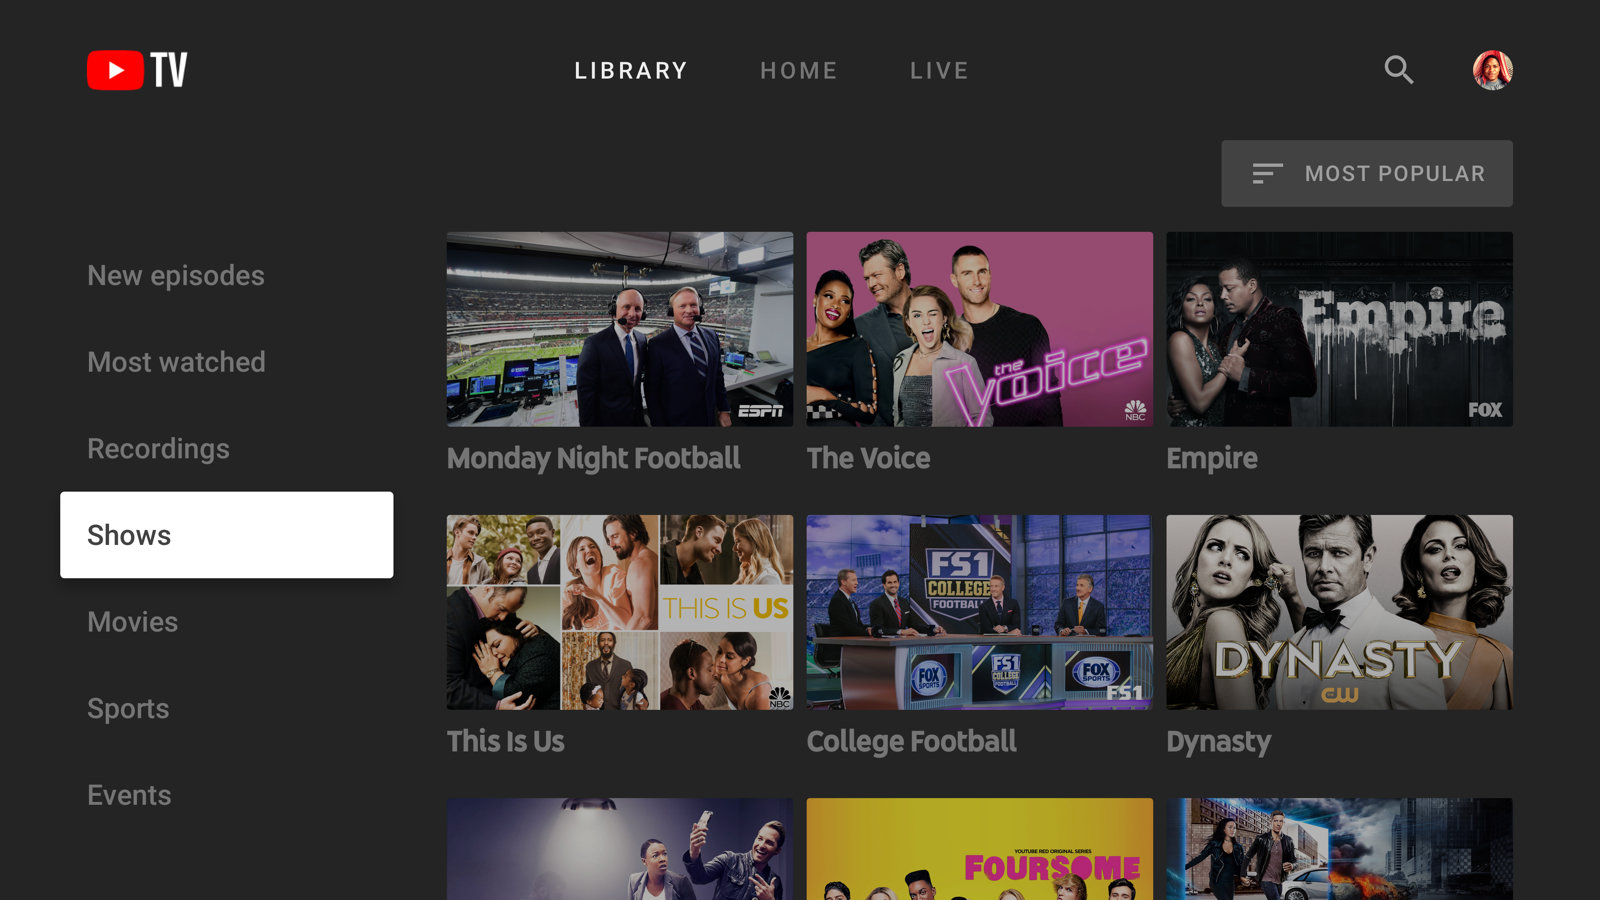 Youtube Tv Everything You Need To Know About The Service Techradar